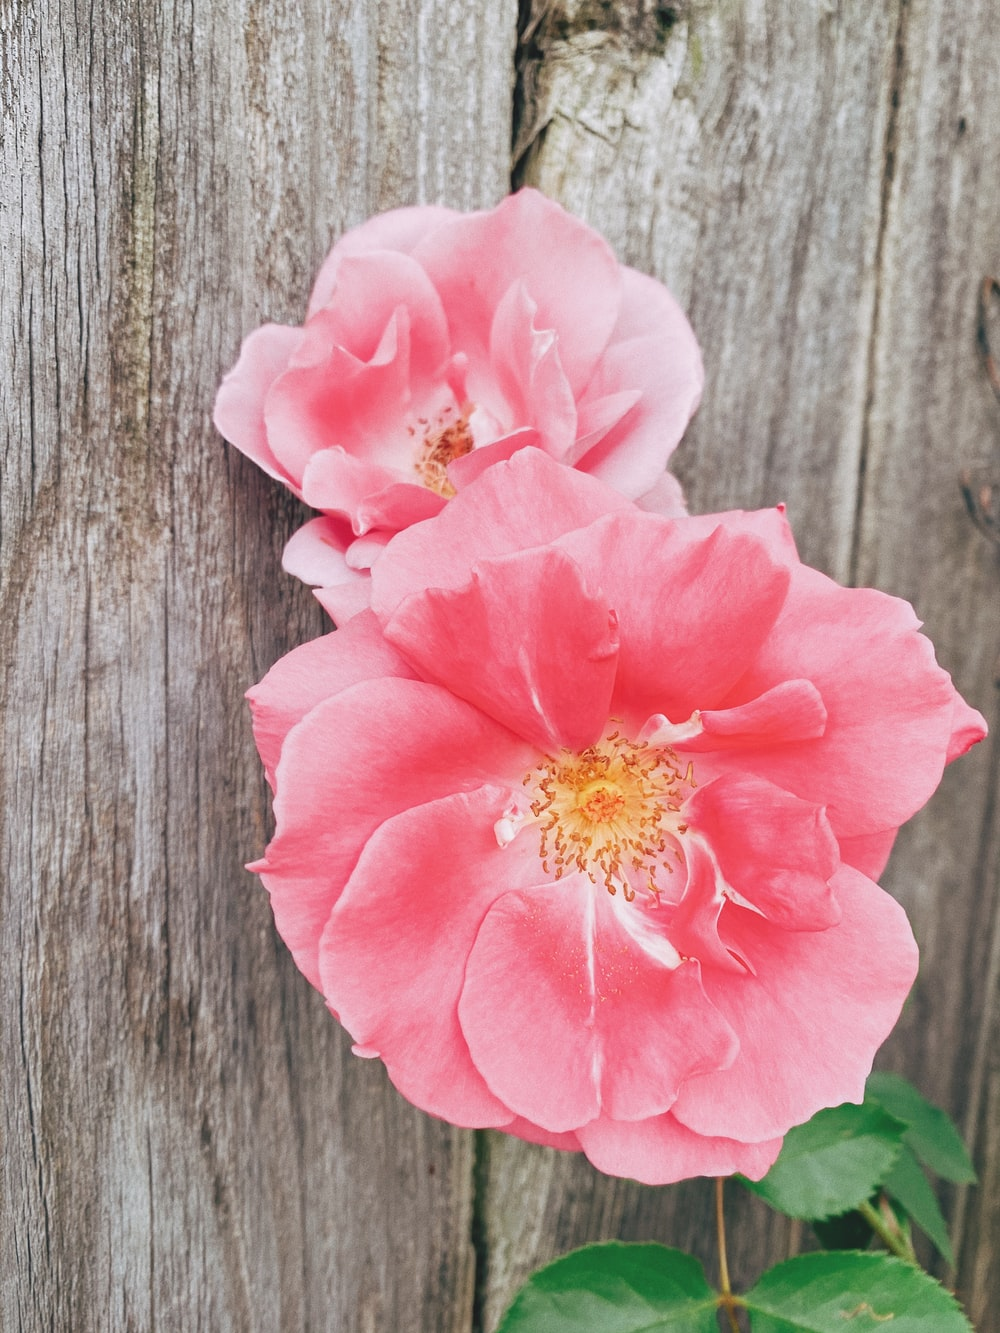 pink flower on gray wooden surface